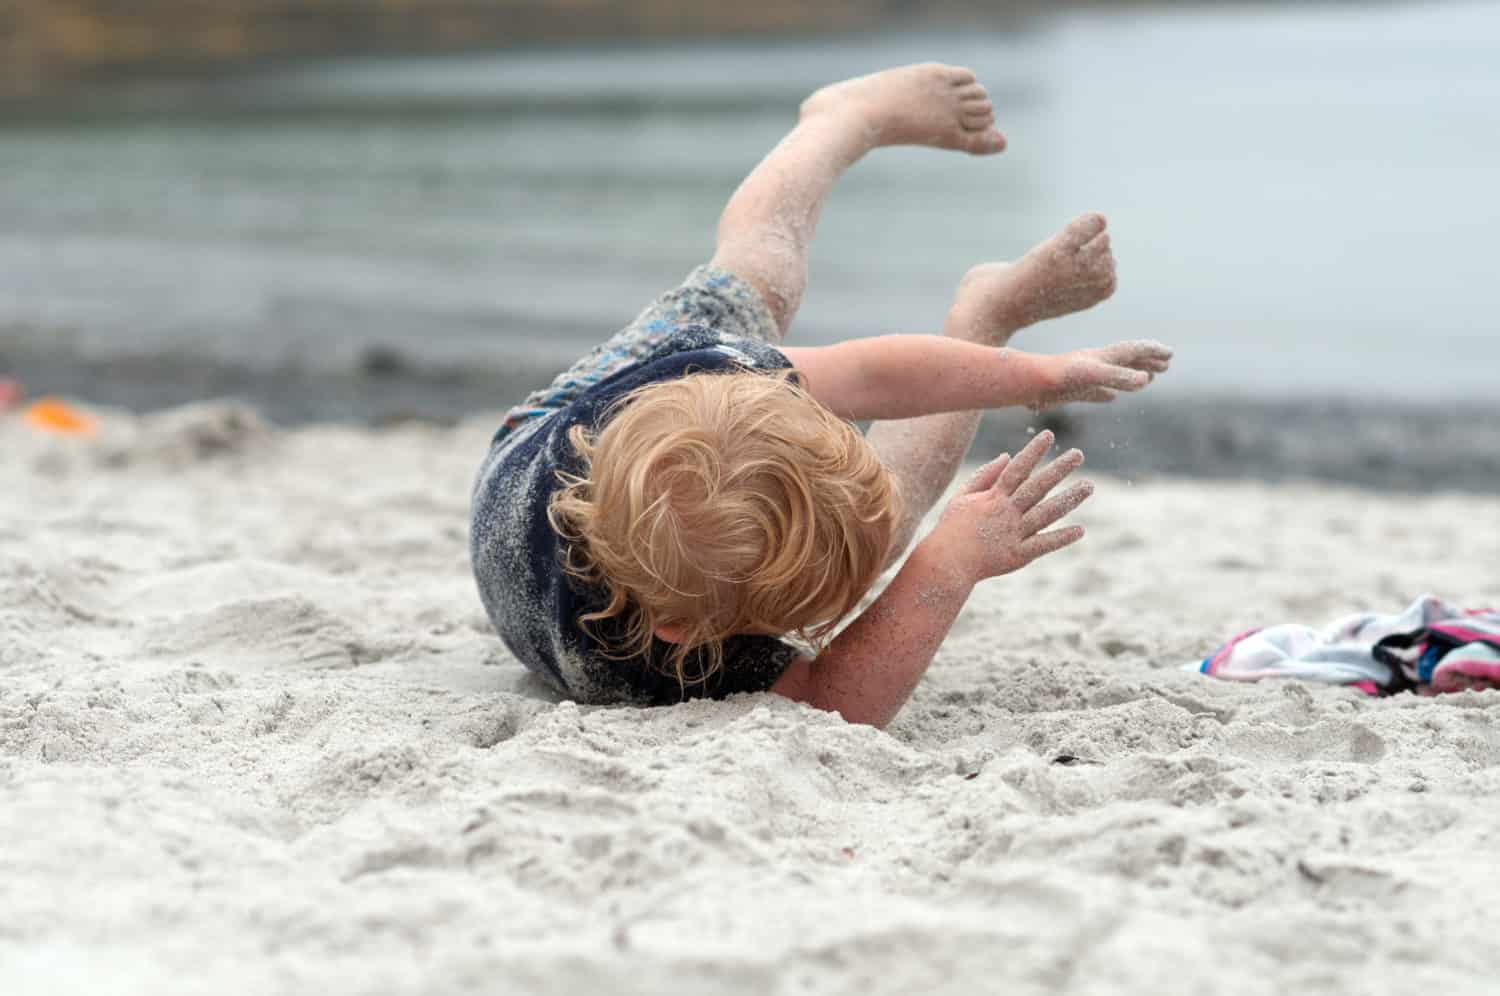 Toddler rolling around in the sand at the beach